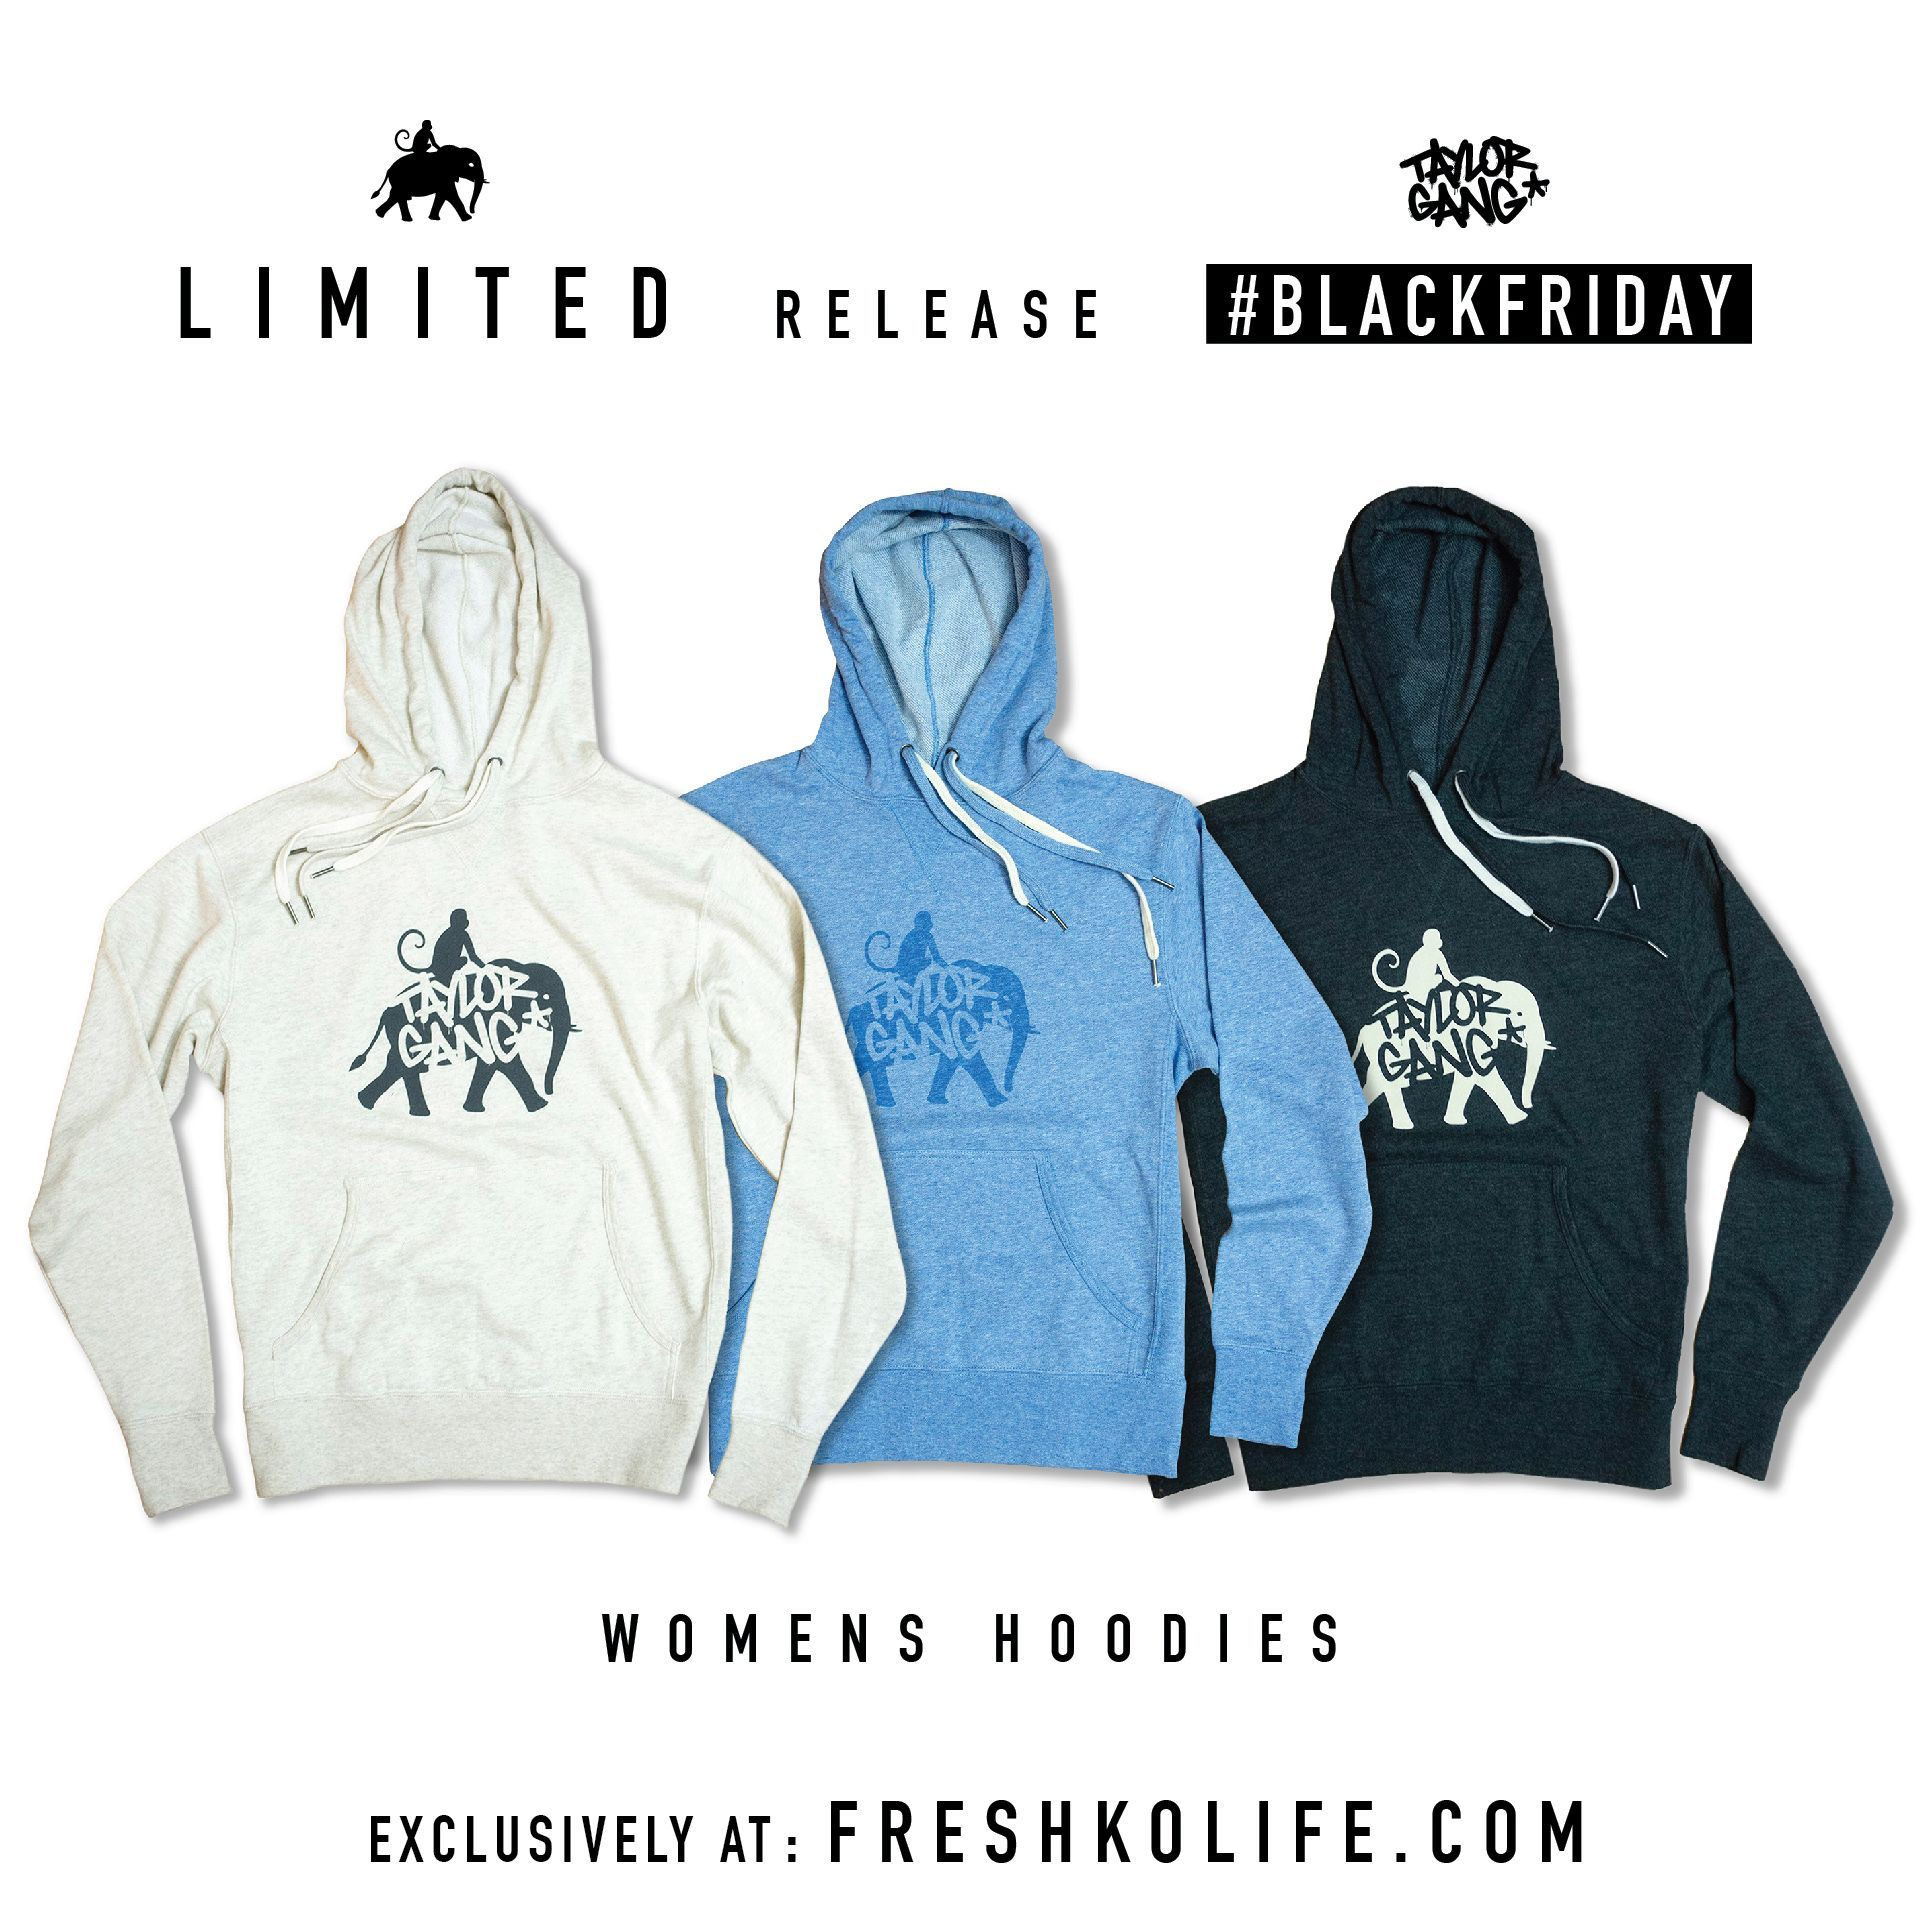 NEW Women's Hoodies - Freshko X Taylor Gang Collab Hoodies - Only at https://t.co/p1g8qhikm3 https://t.co/dcduQt2tsd